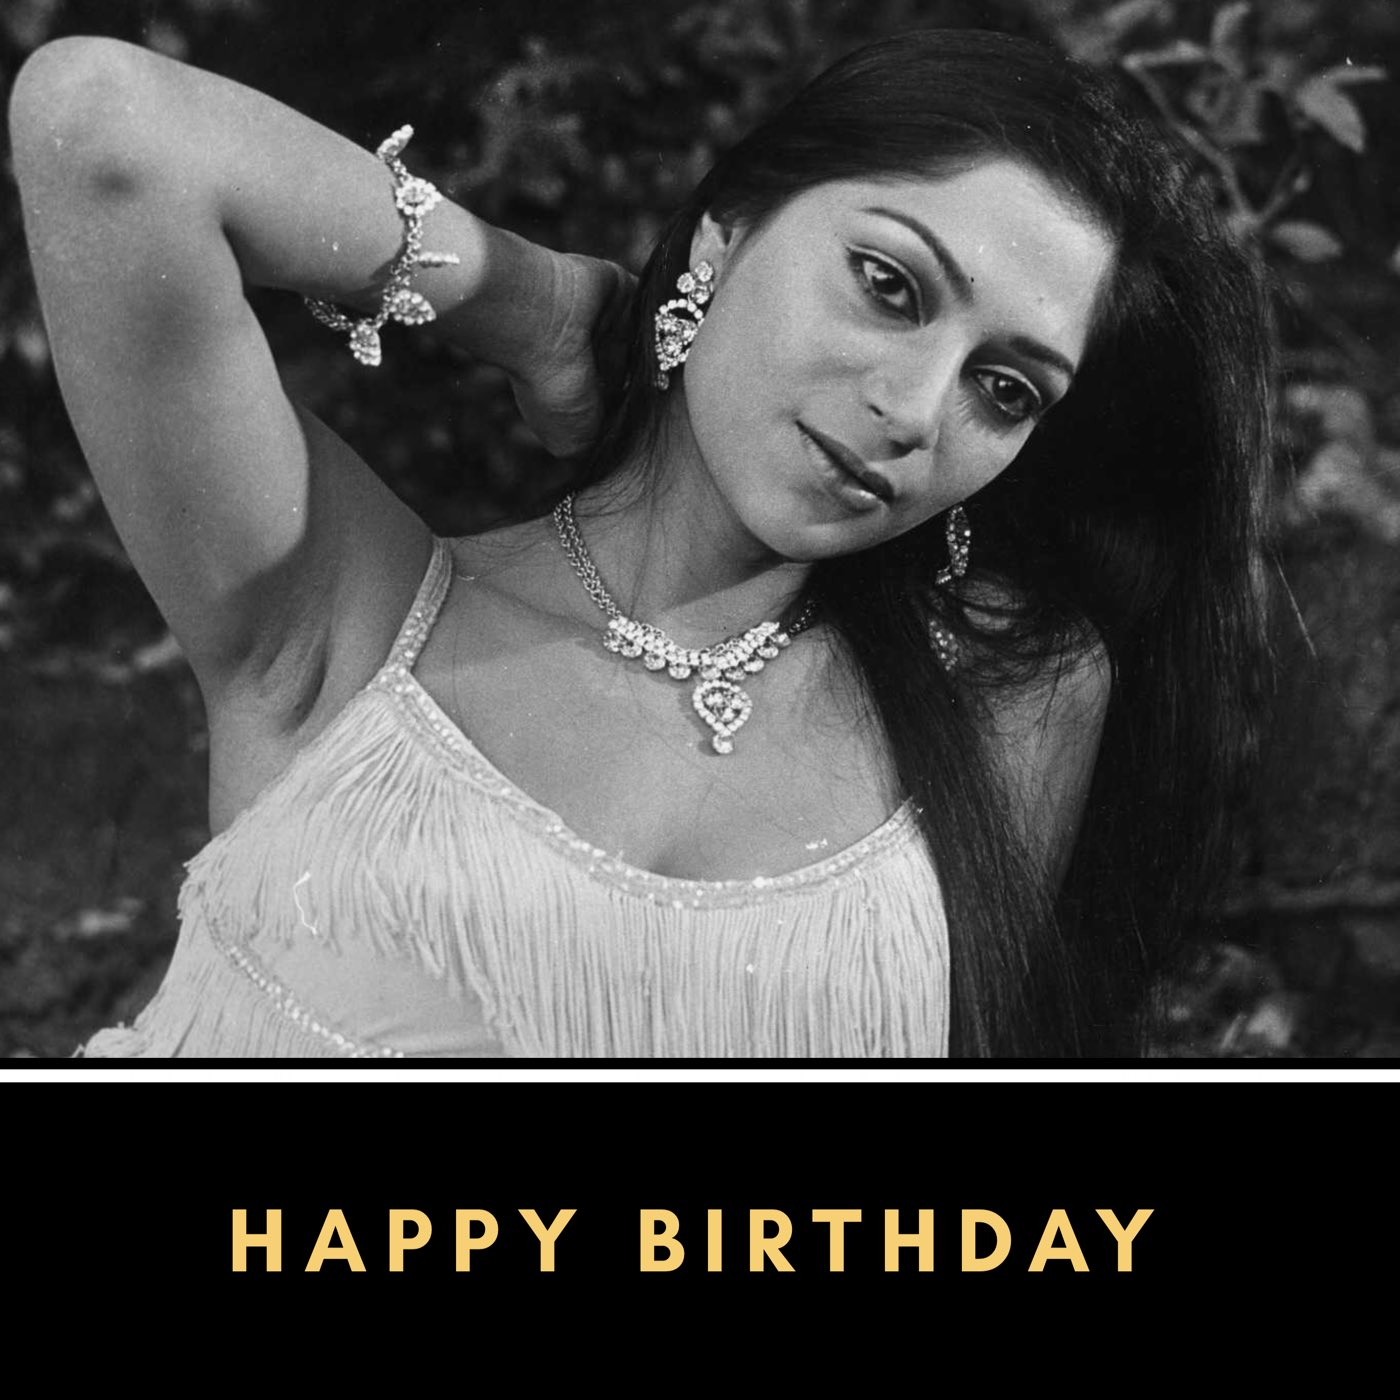 Happy Bday Simi ji , greeting and lots of love